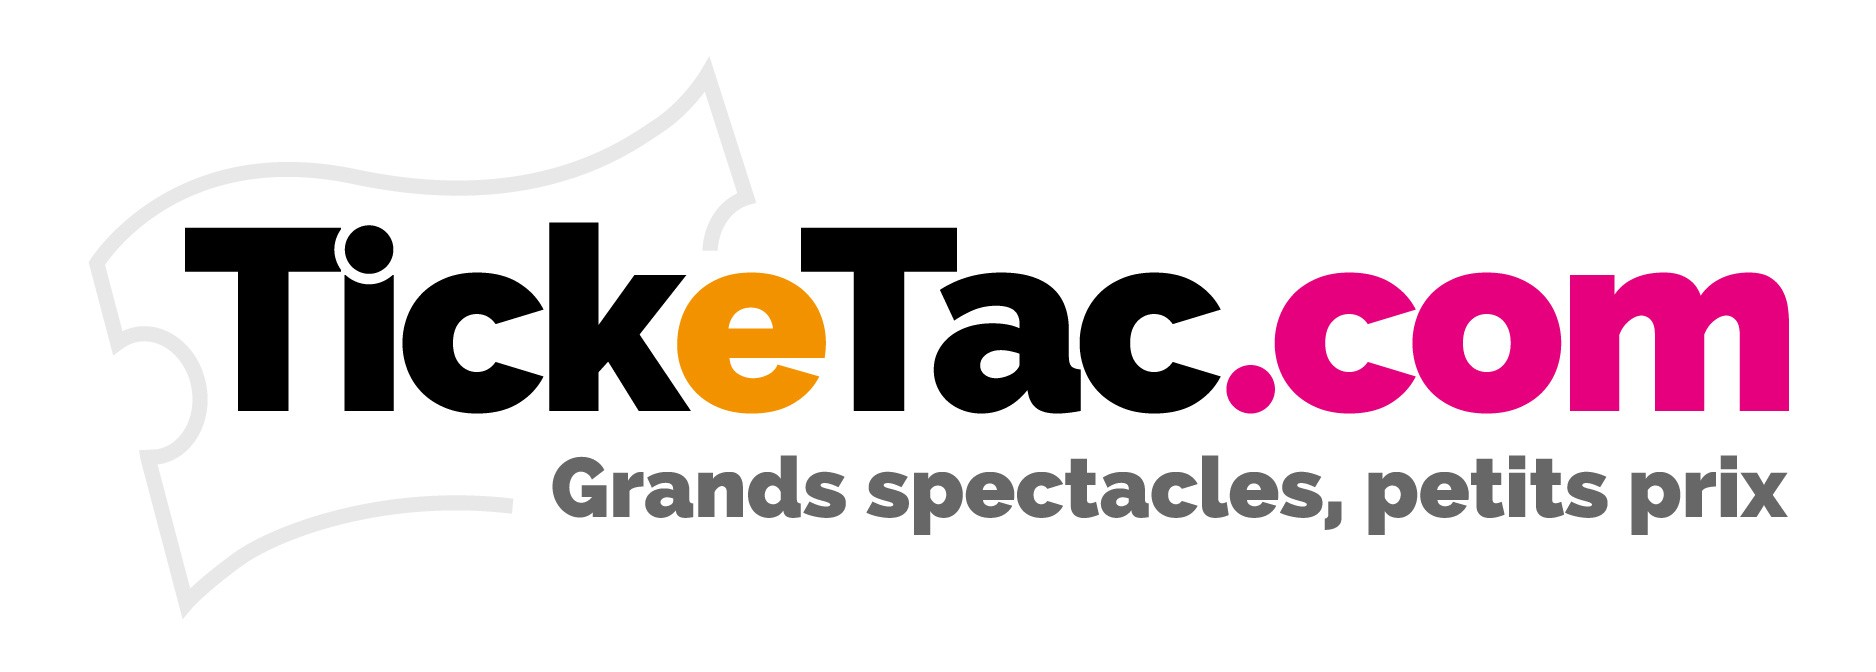 ticketac-logo.jpg